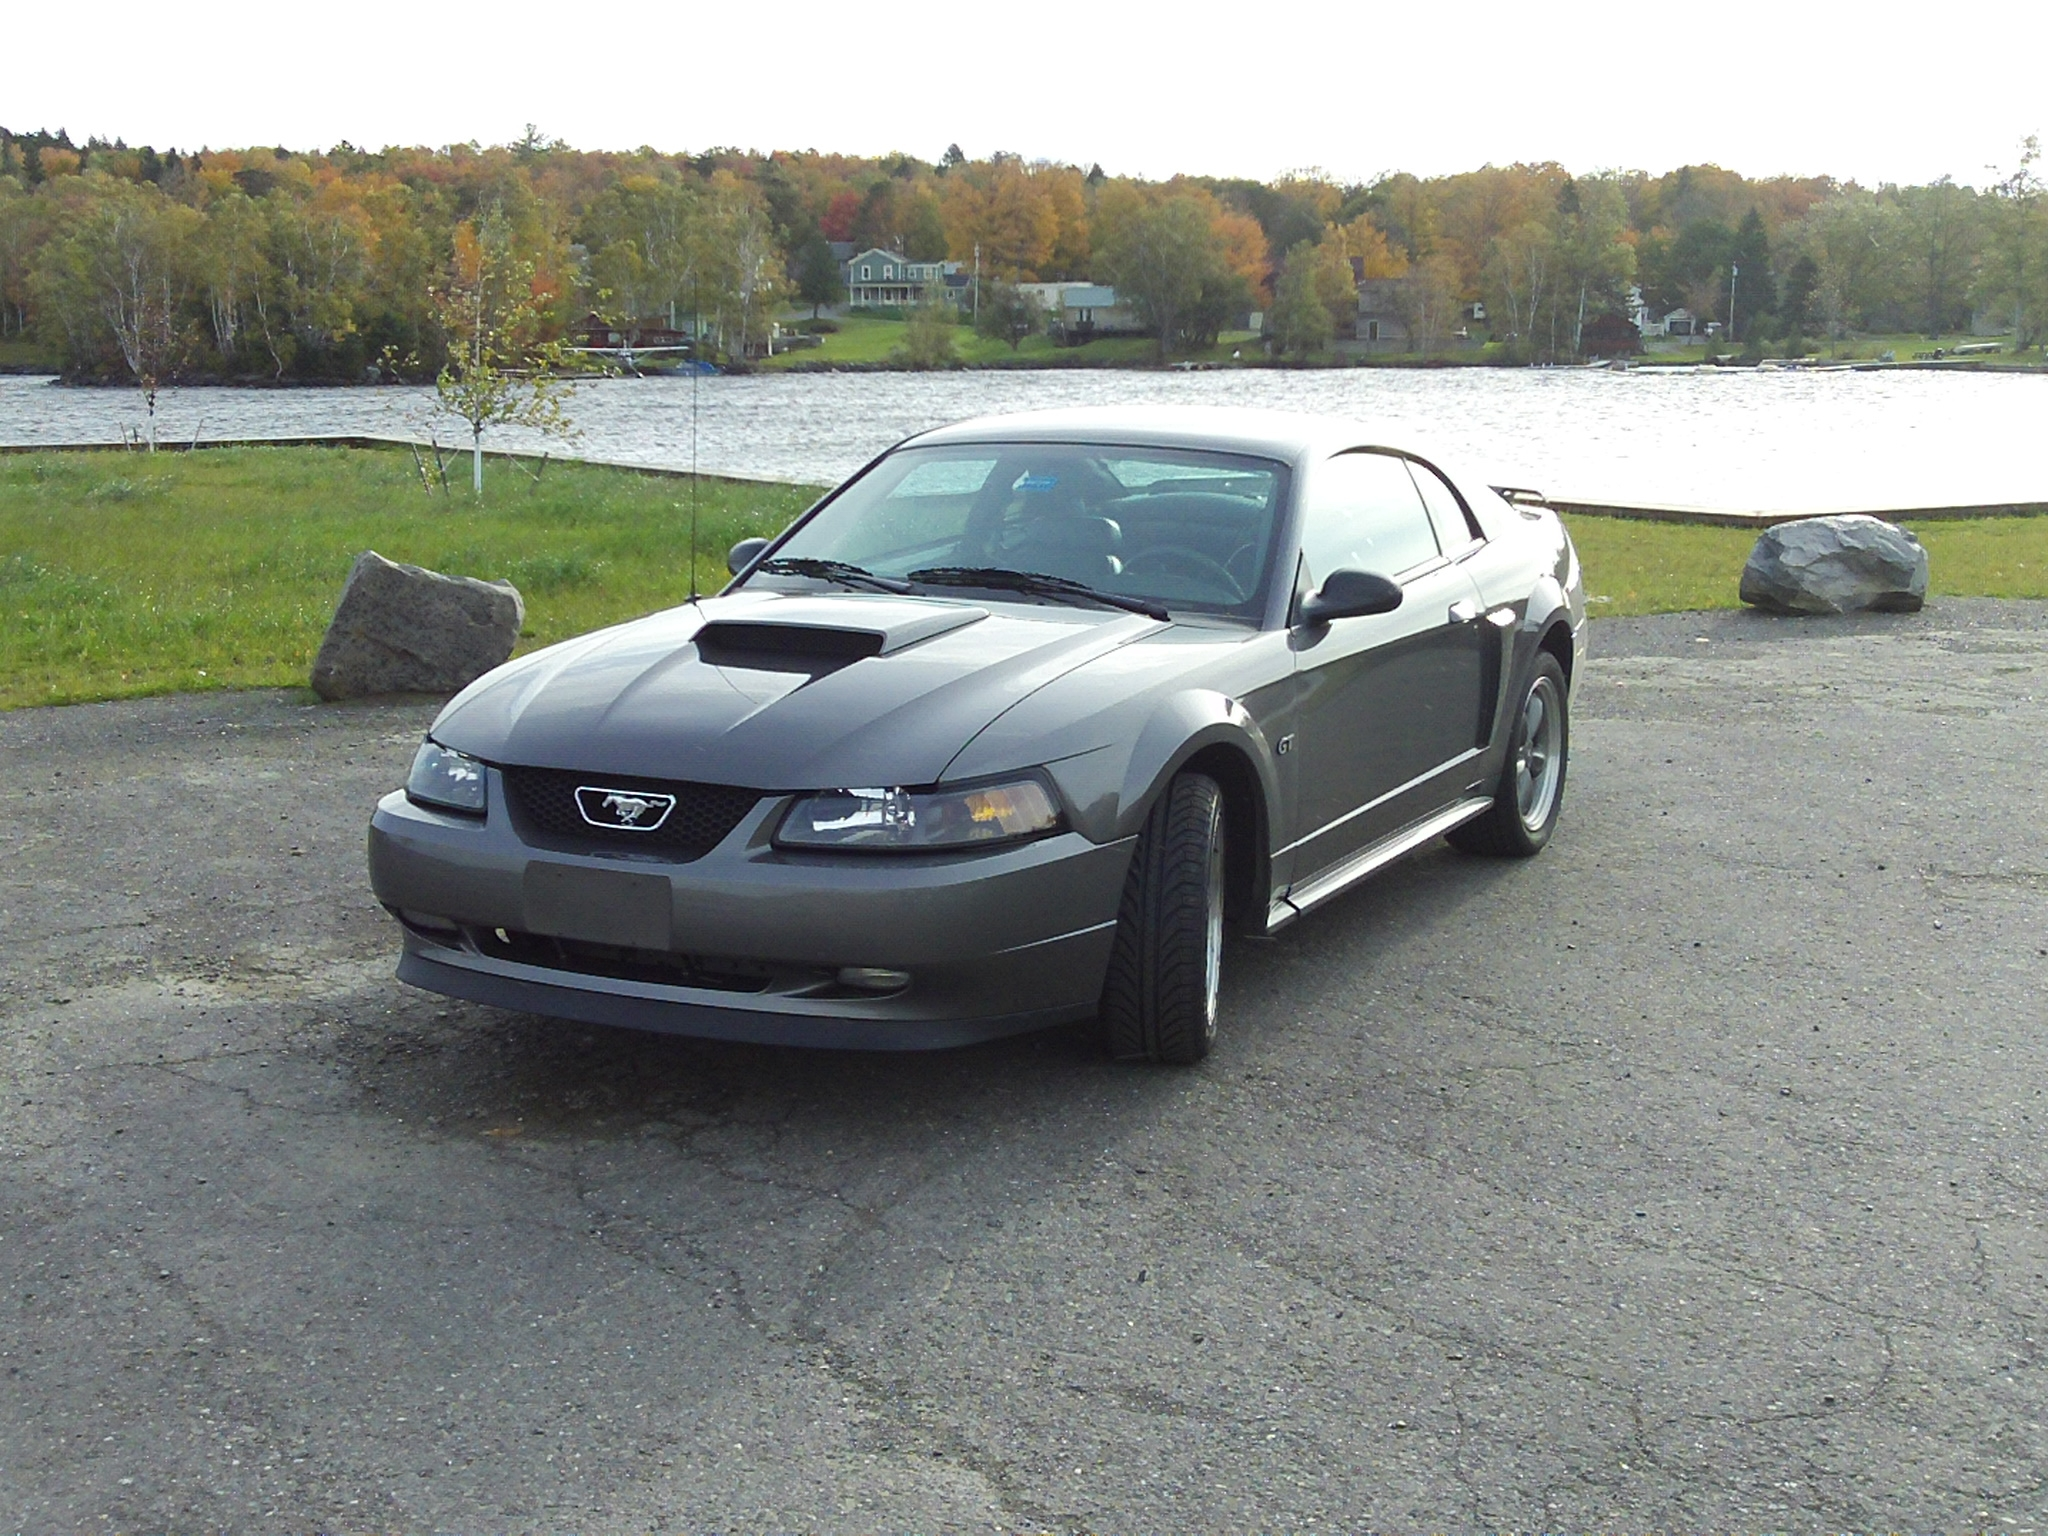 msstang47's 2003 Ford Mustang Mach 1 Premium Coupe 2D in norwood,